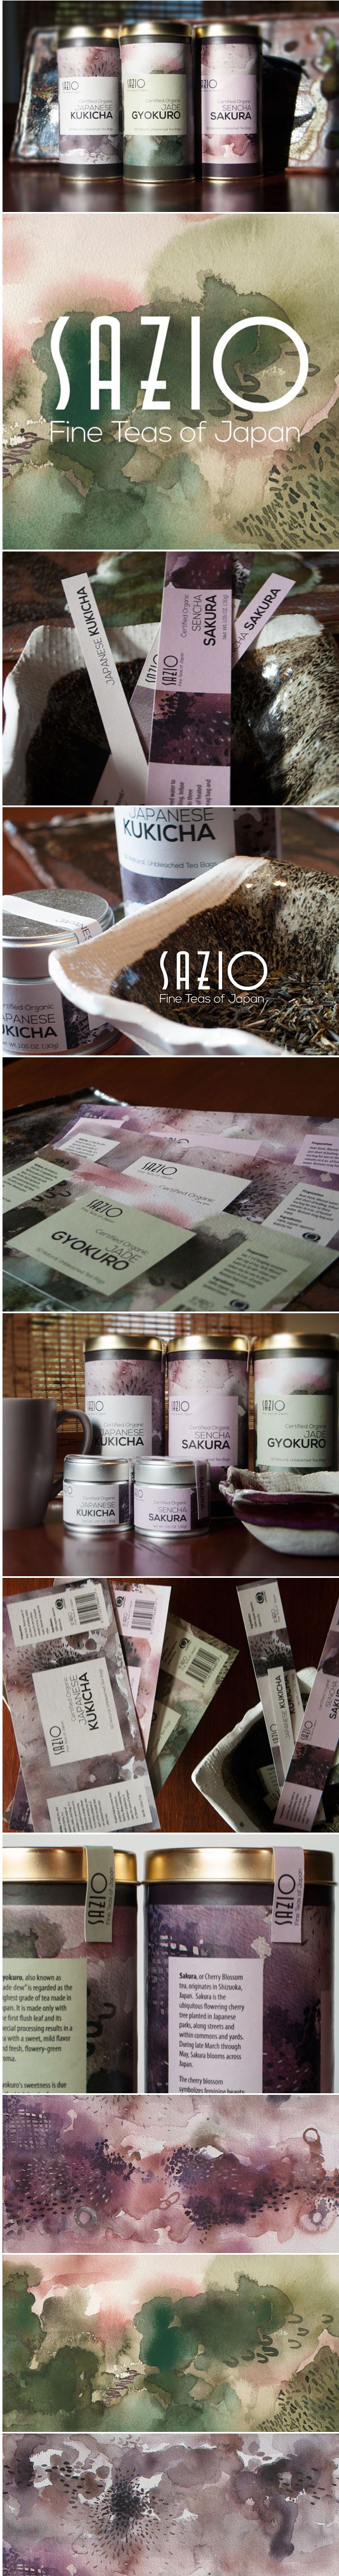 Flux Appeal | Sazio Japan Tea Packaging Design